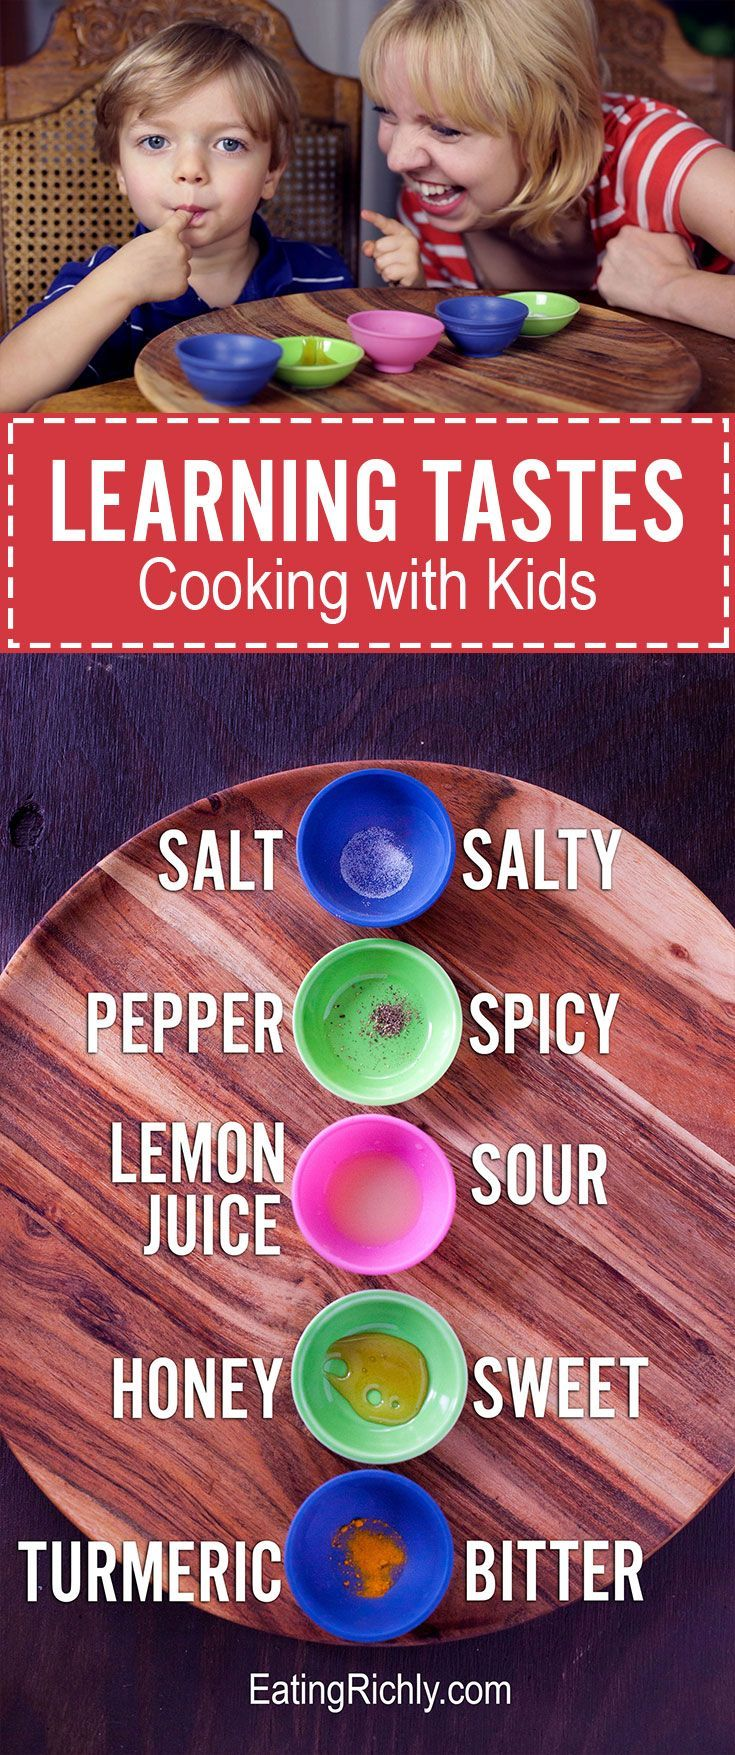 One of the best cooking games for kids uses simple ingredients to teach them about taste. Help your child develop their palate as they play! Part of #MiniChefMondays on http://EatingRichly.com